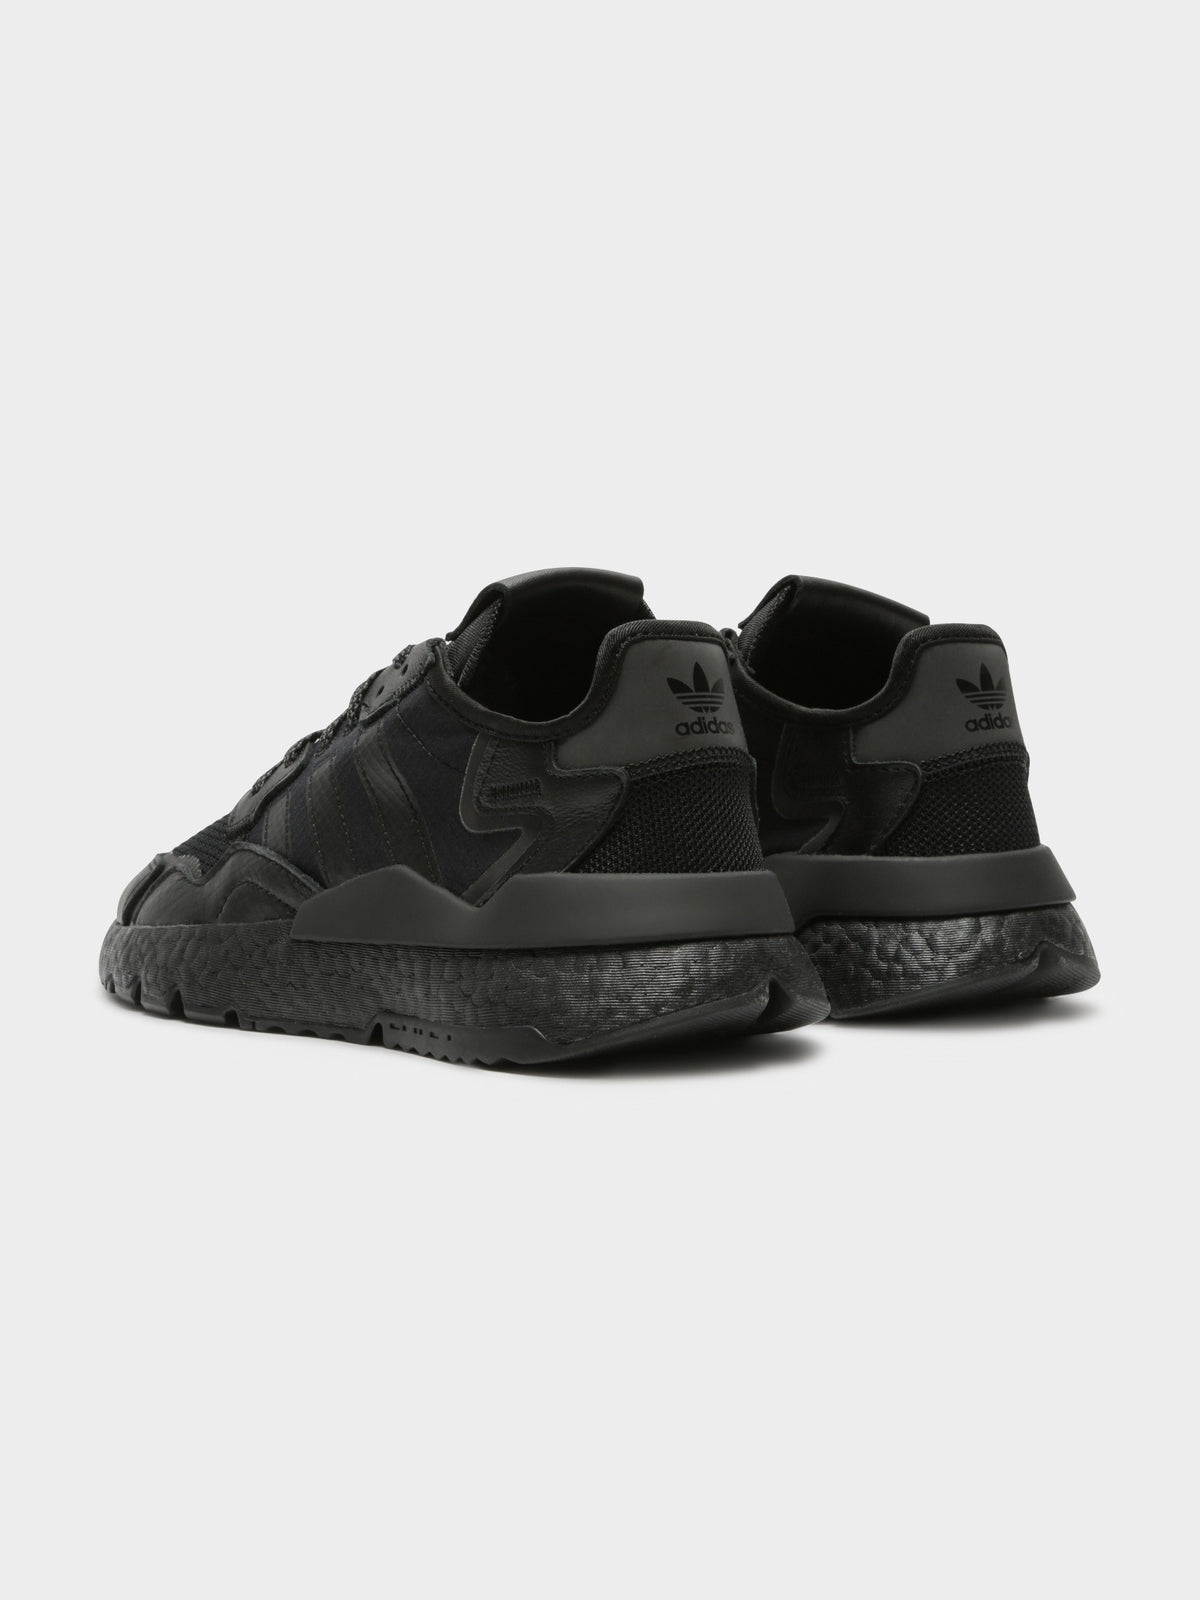 Mens Nite Jogger Sneakers in Black